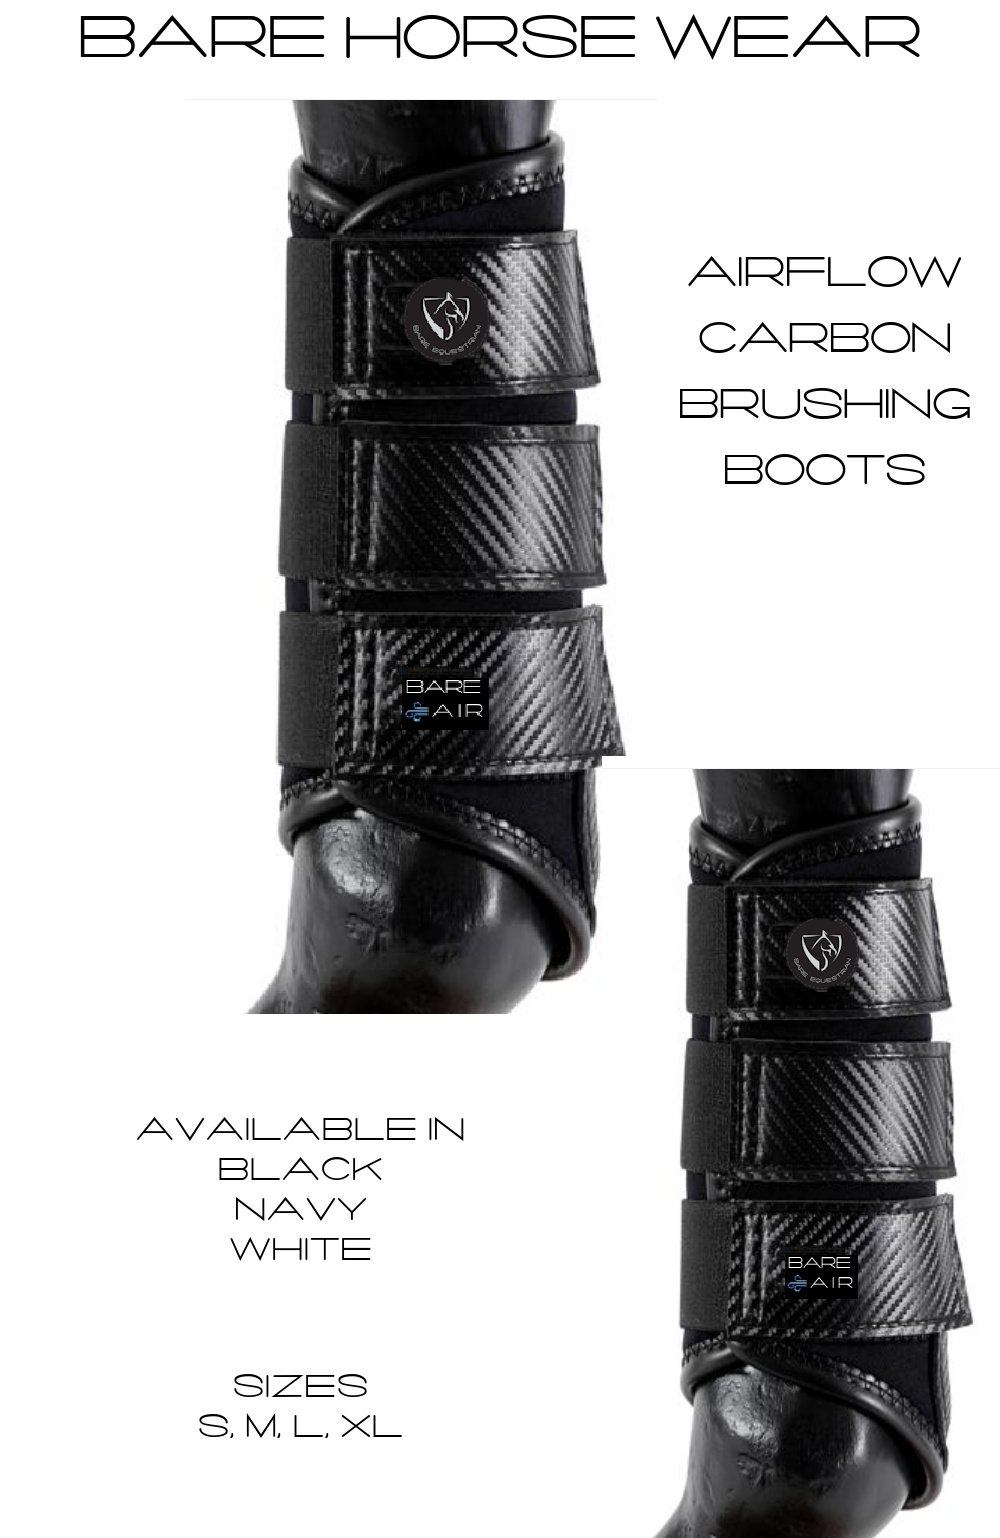 BARE AIR Carbon Airflow Boots - Black L at Bowral Coop